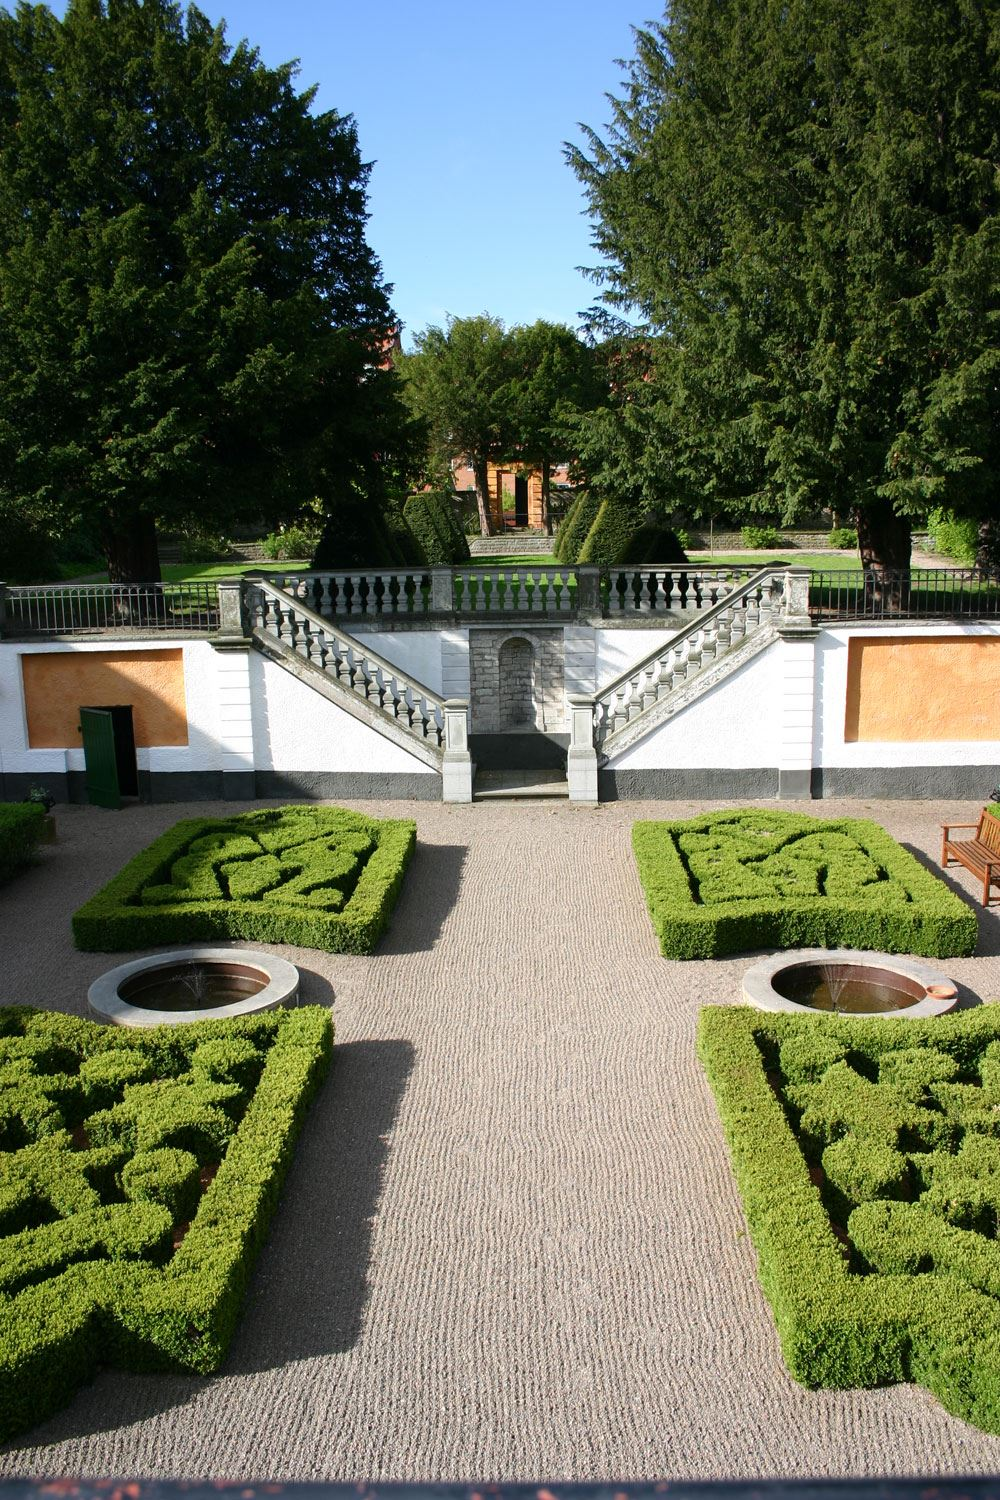 The Baroque Garden - Grevagården